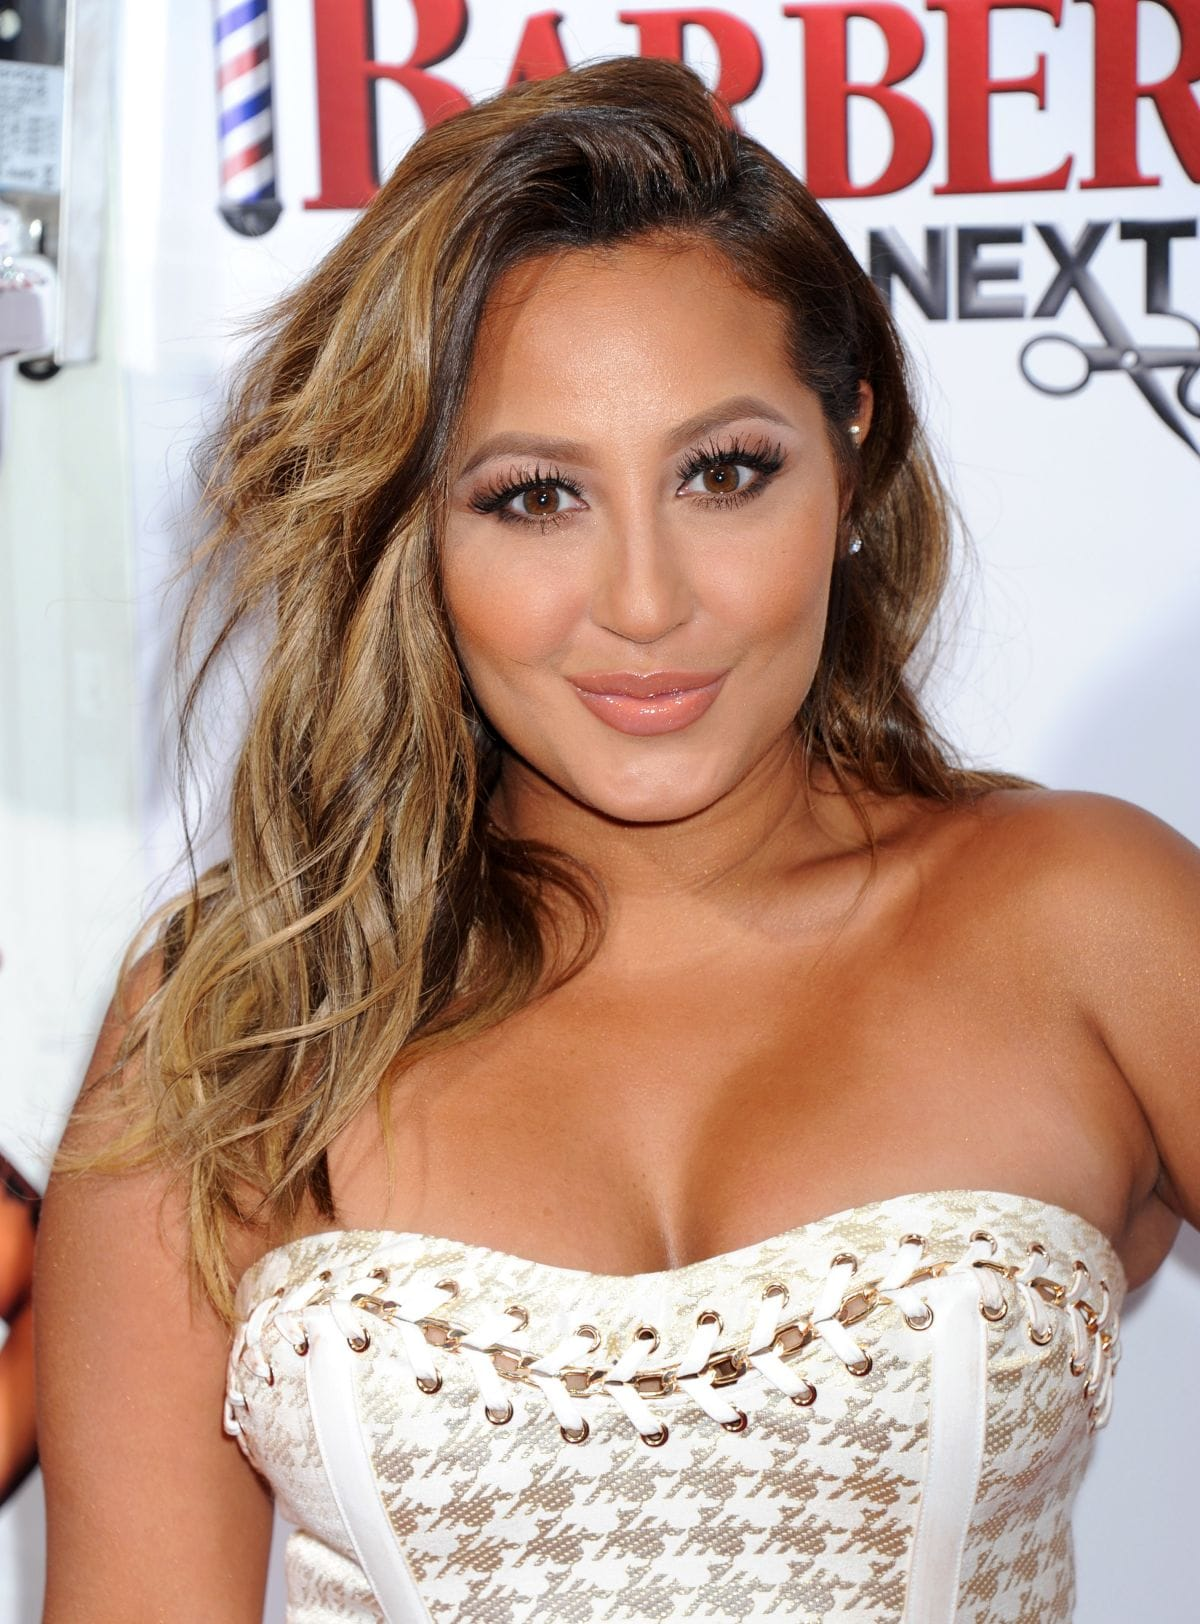 Adrienne Bailon Full hd wallpapers